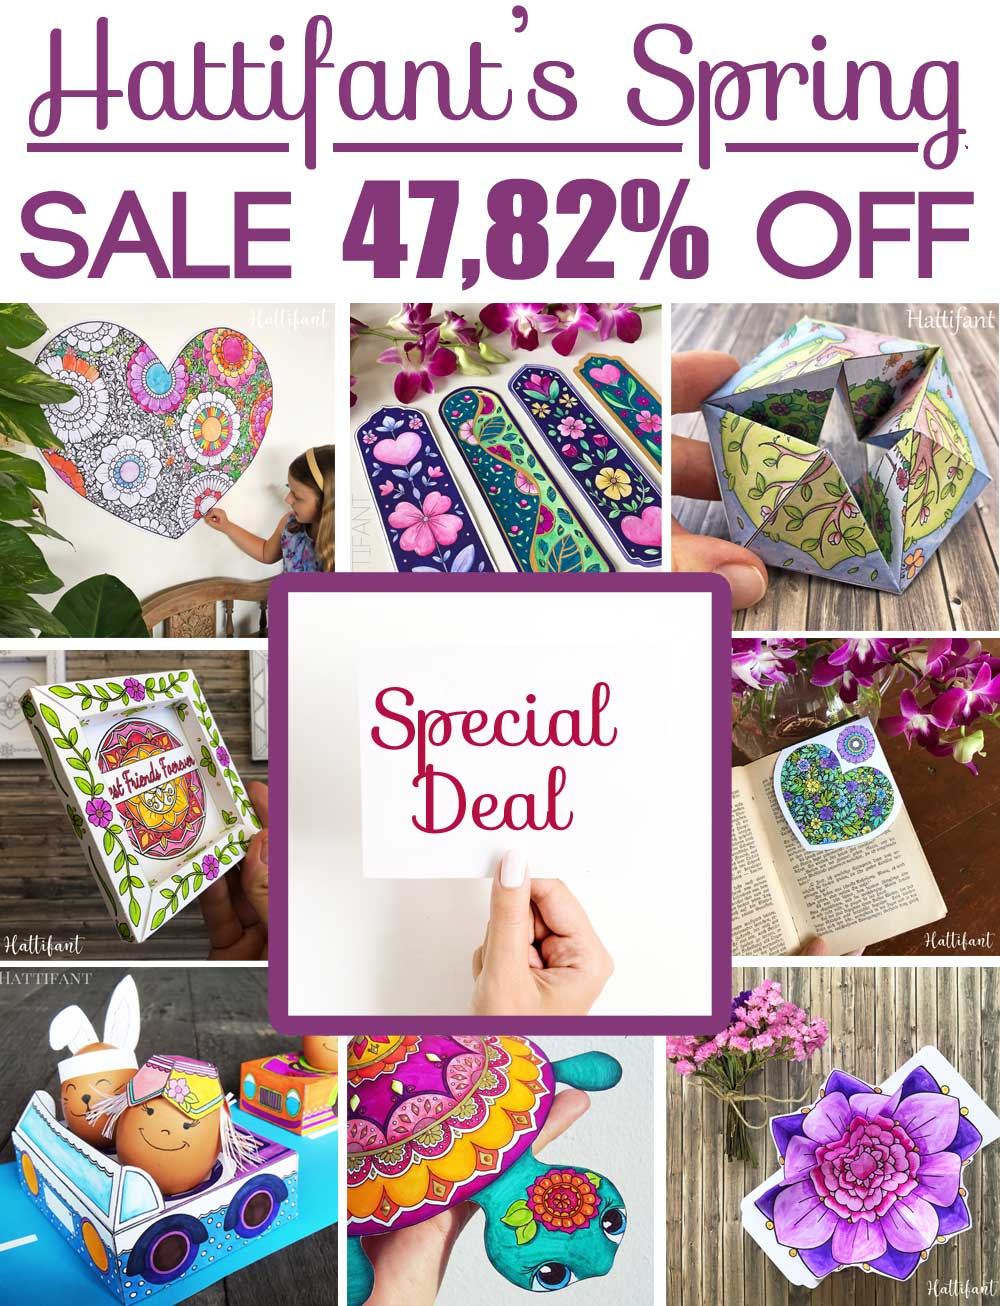 Hattifant's giant superduper Spring Paper Craft Bundle Sale